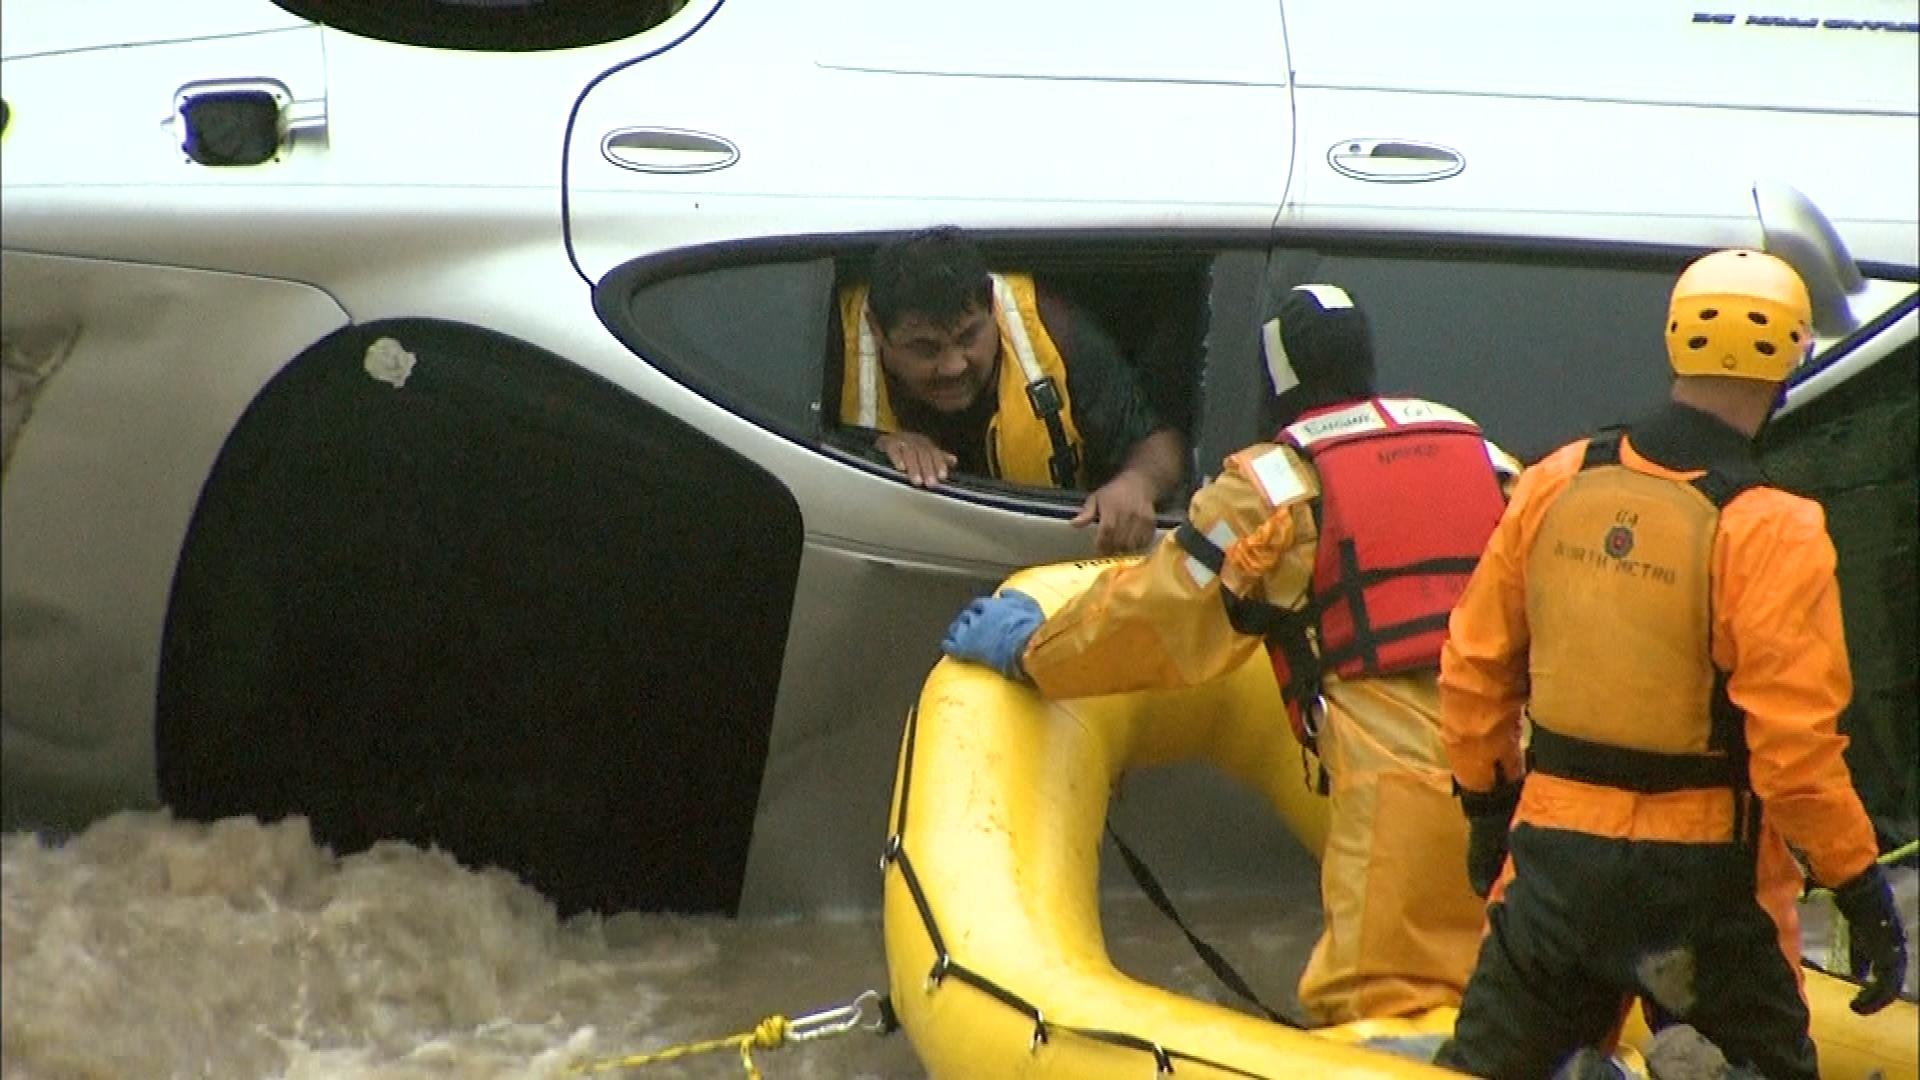 Rescuers start extracting the man from his overturned car. (credit: CBS)